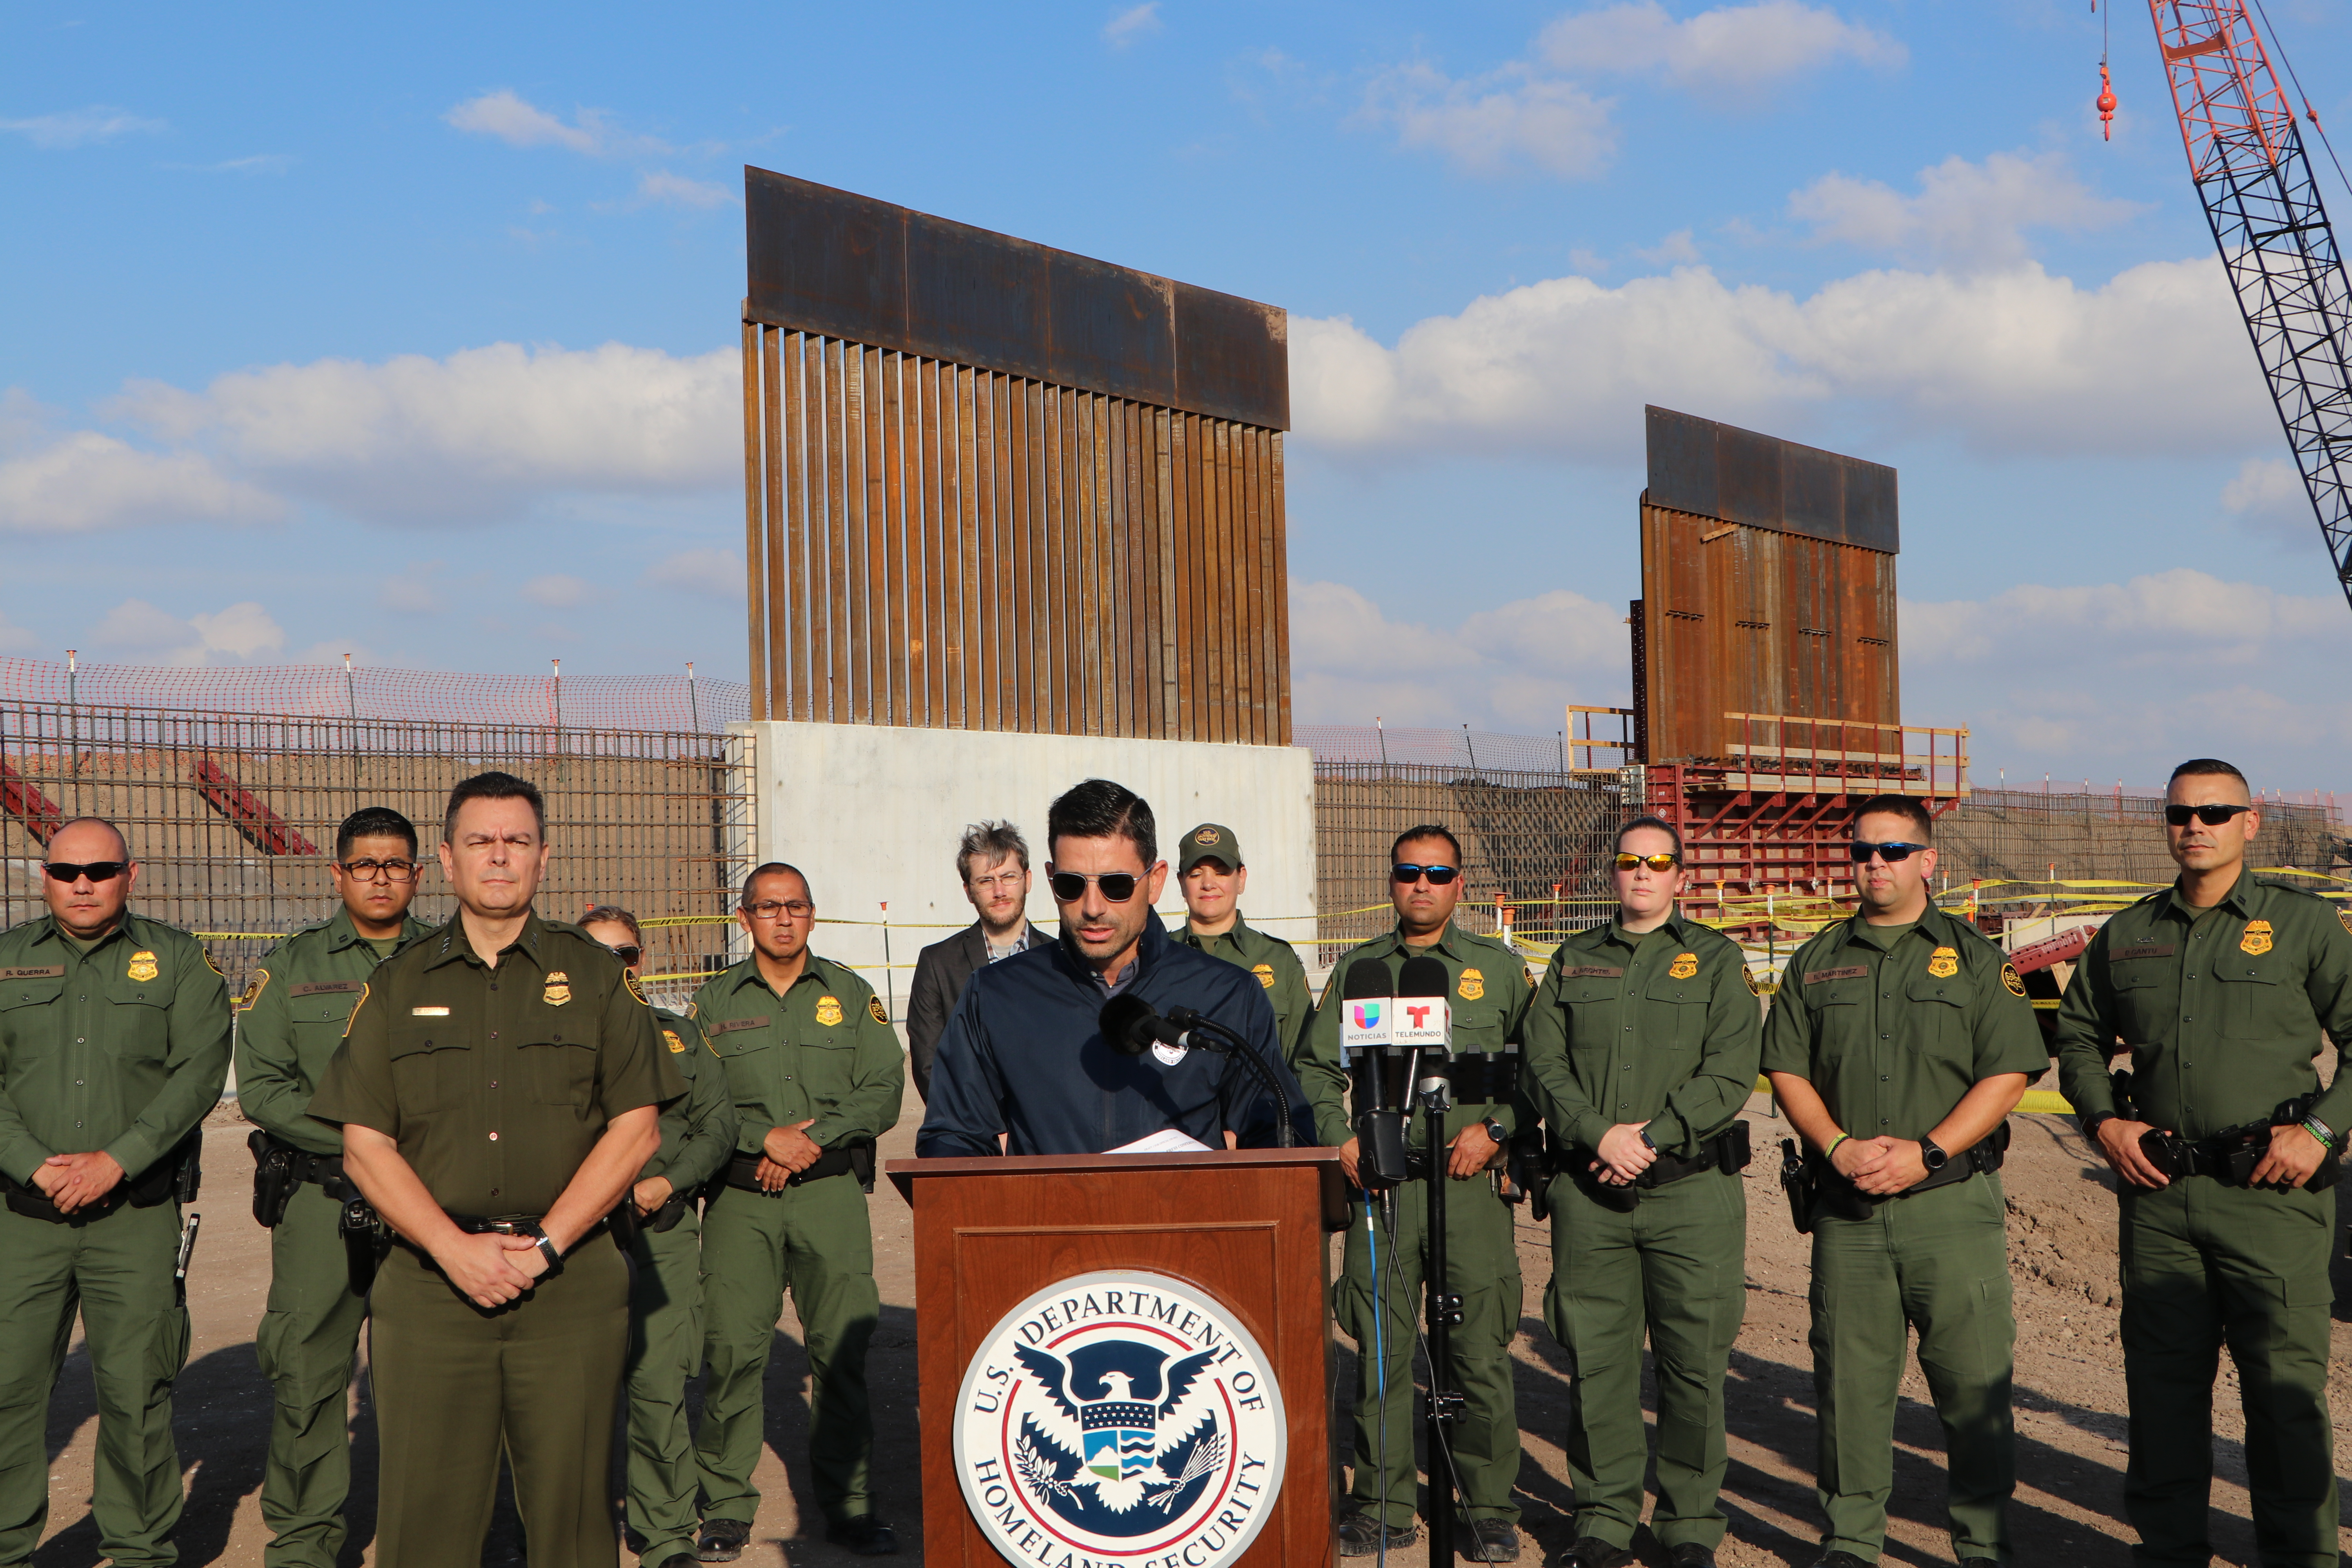 New acting DHS Chief Chad Wolf tours new border wall as construction ramps up, calls it 'common sense'